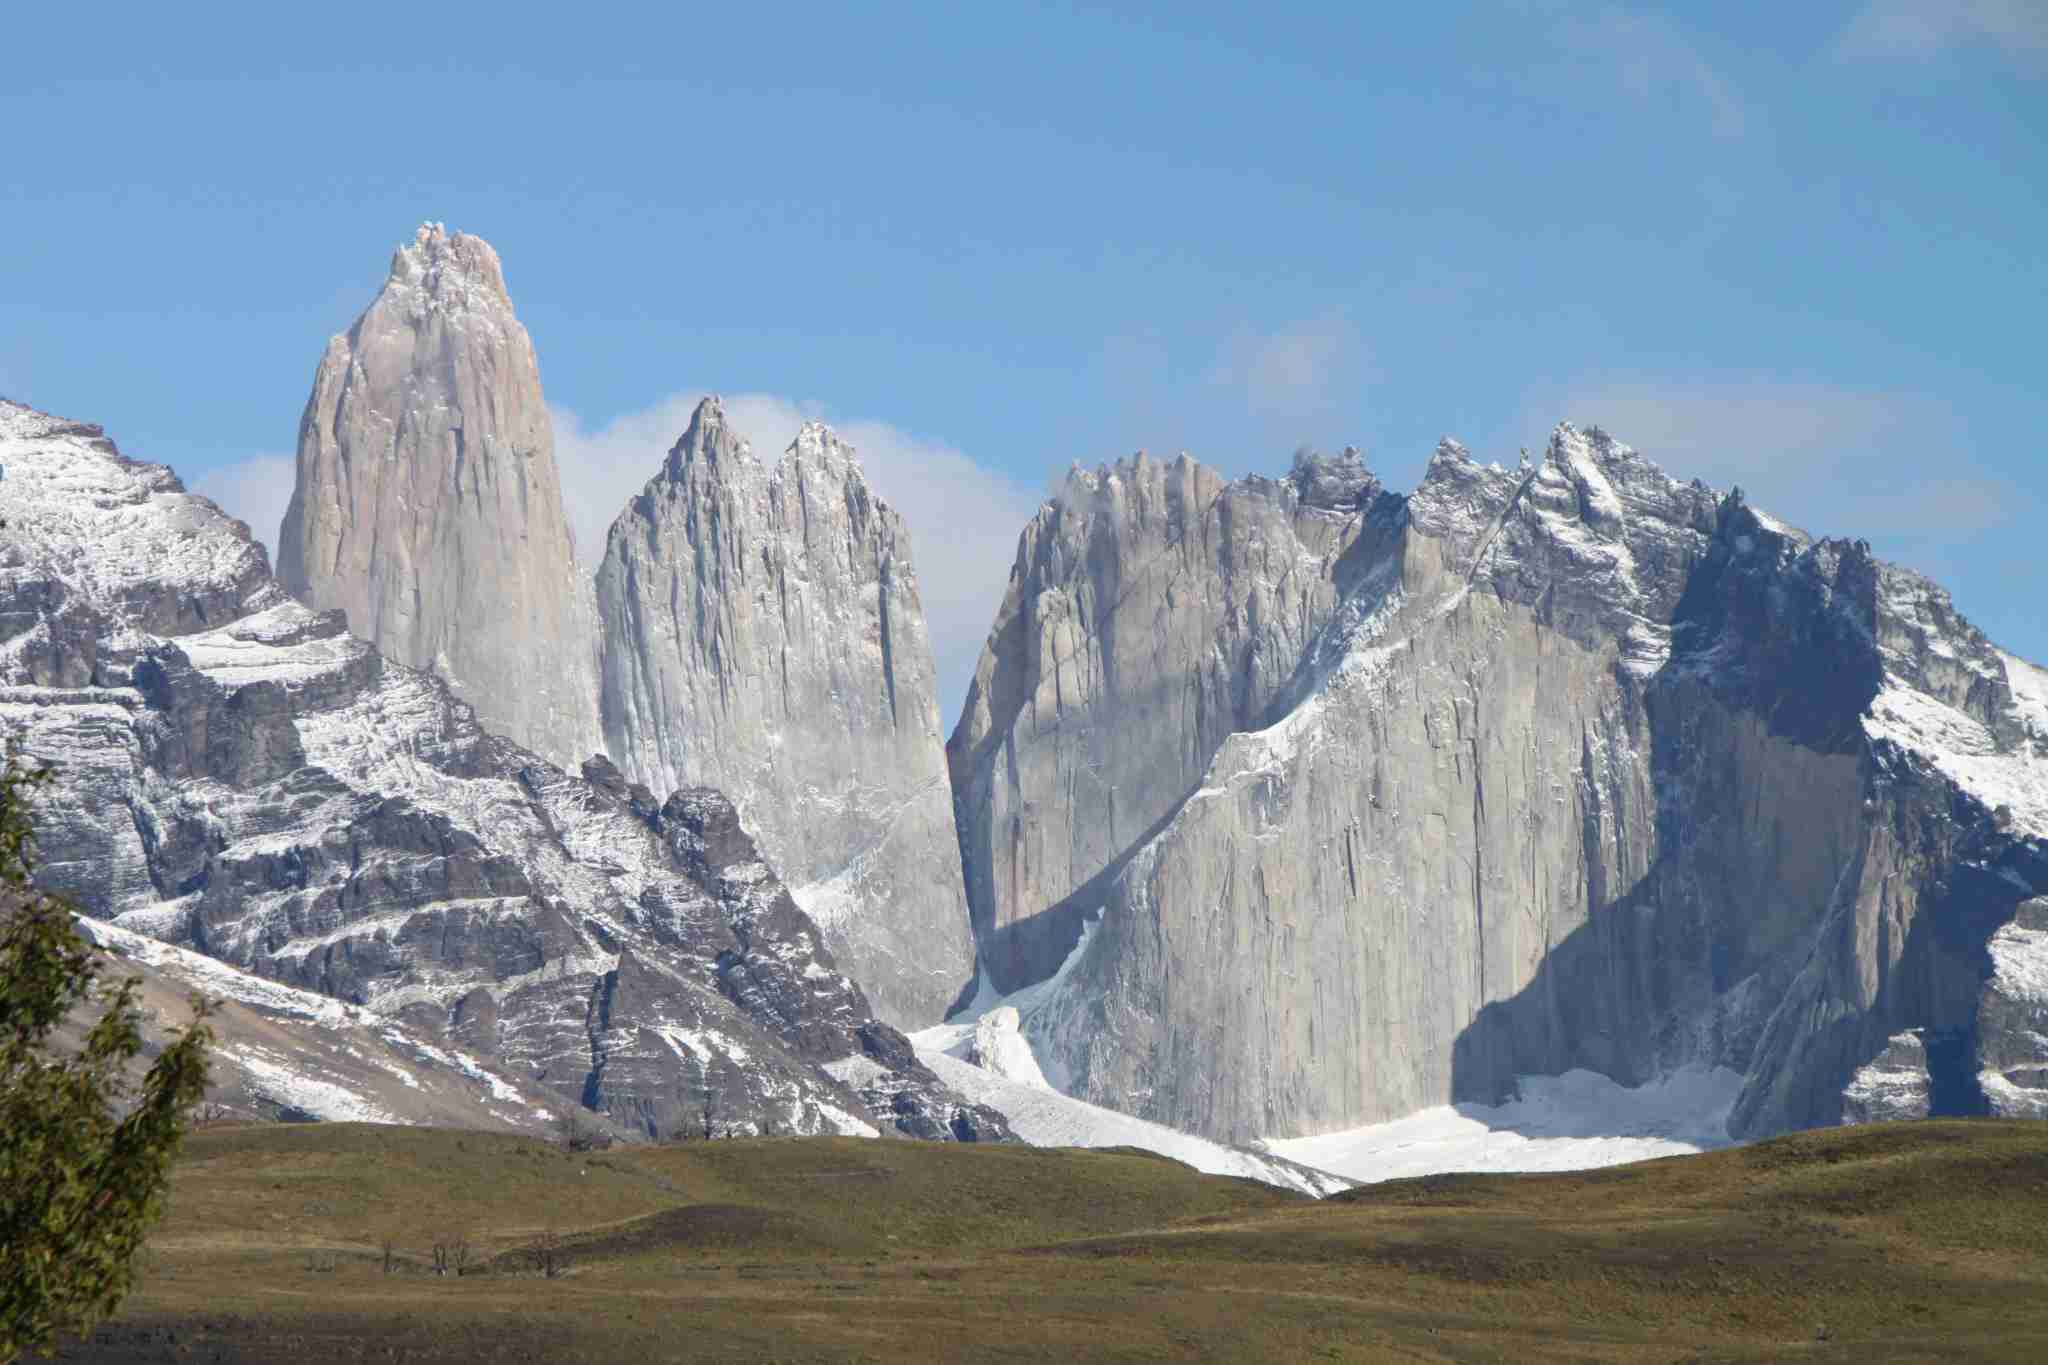 LATAM covers a lot of South America, including Chilean Patagonia and access to Torres Del Paine